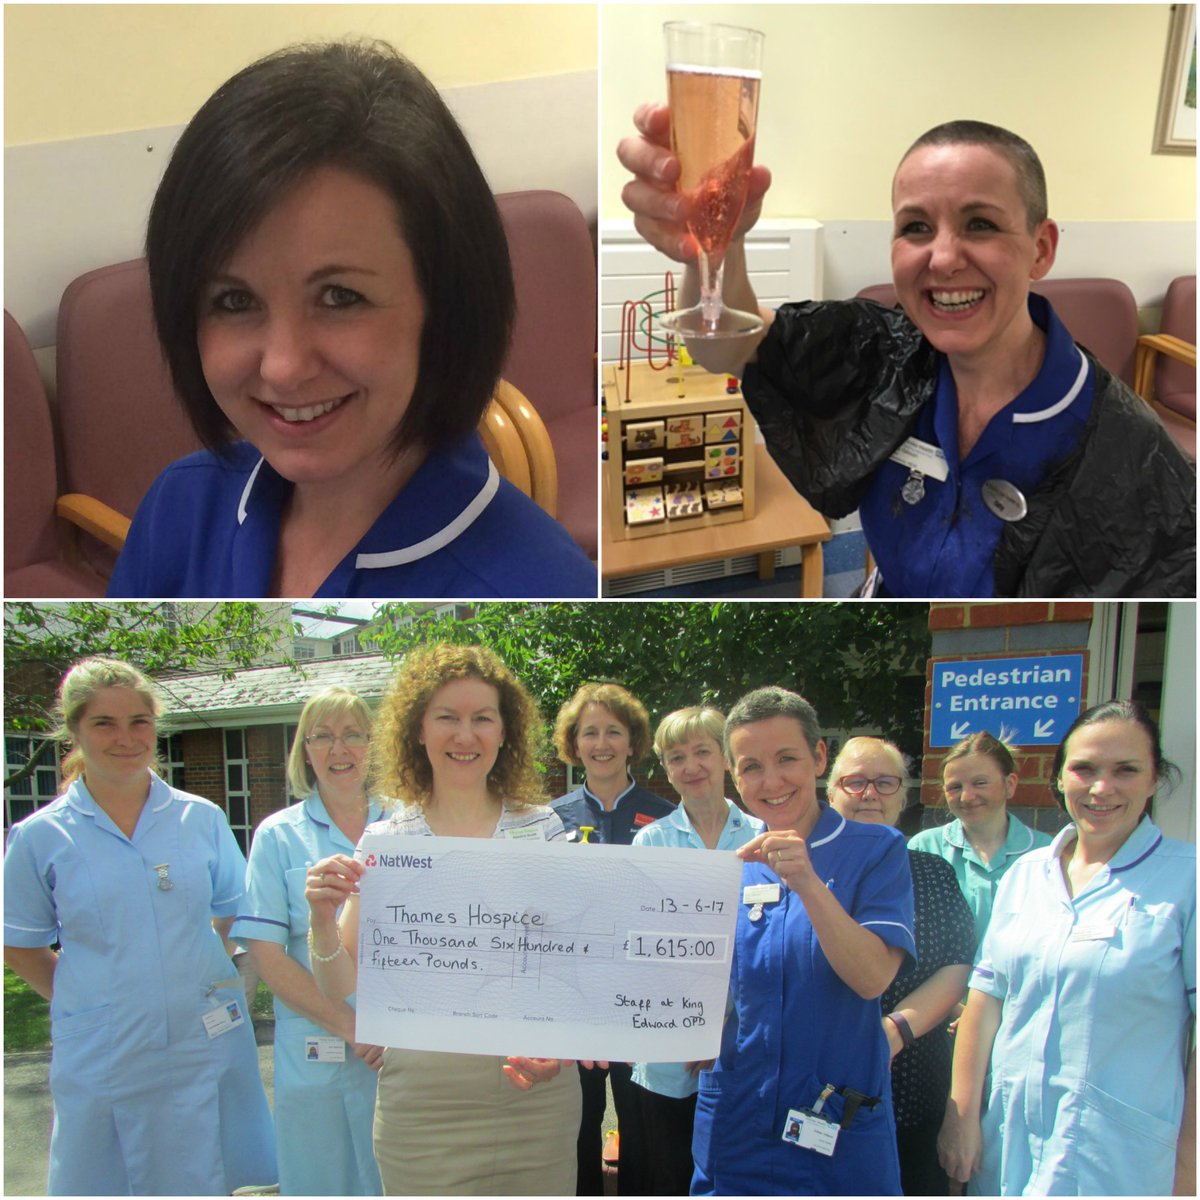 #Sister Gilly, from #King Edward VII #hospital, has #baldly gone &amp; shaved her luscious locks to #generate a hair-raising £1,615 for us! <br>http://pic.twitter.com/ZpDODsgqYZ